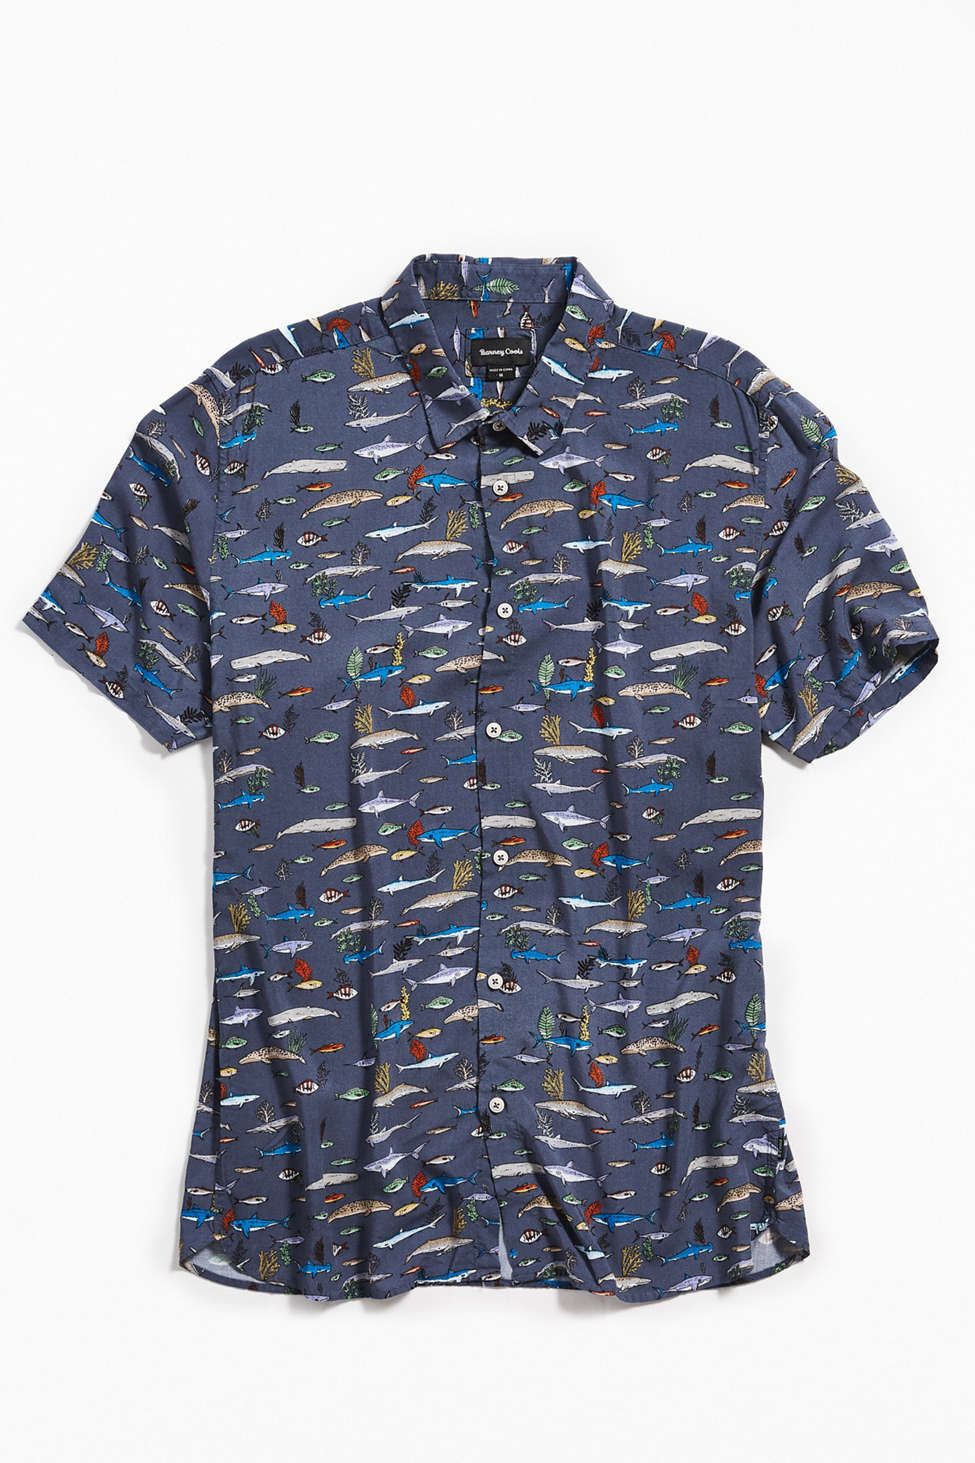 Chemise Boutonnee A Manches Courtes Sea Life Barney Cools Urban